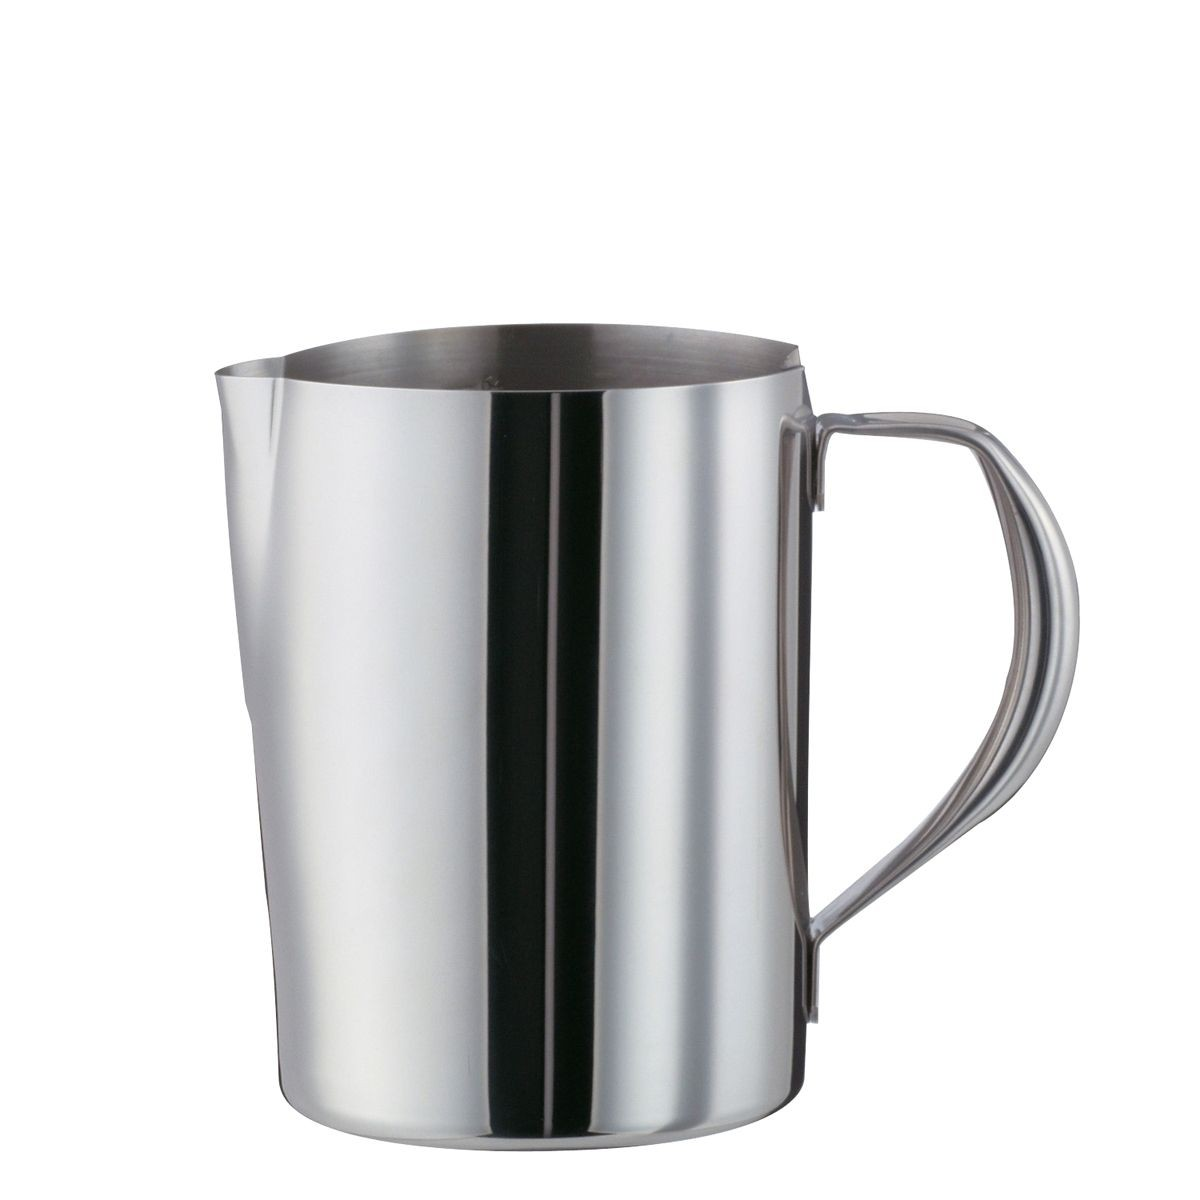 Service Ideas FROTH646 Frothing Pitcher 64 oz. with 6 oz. Increments